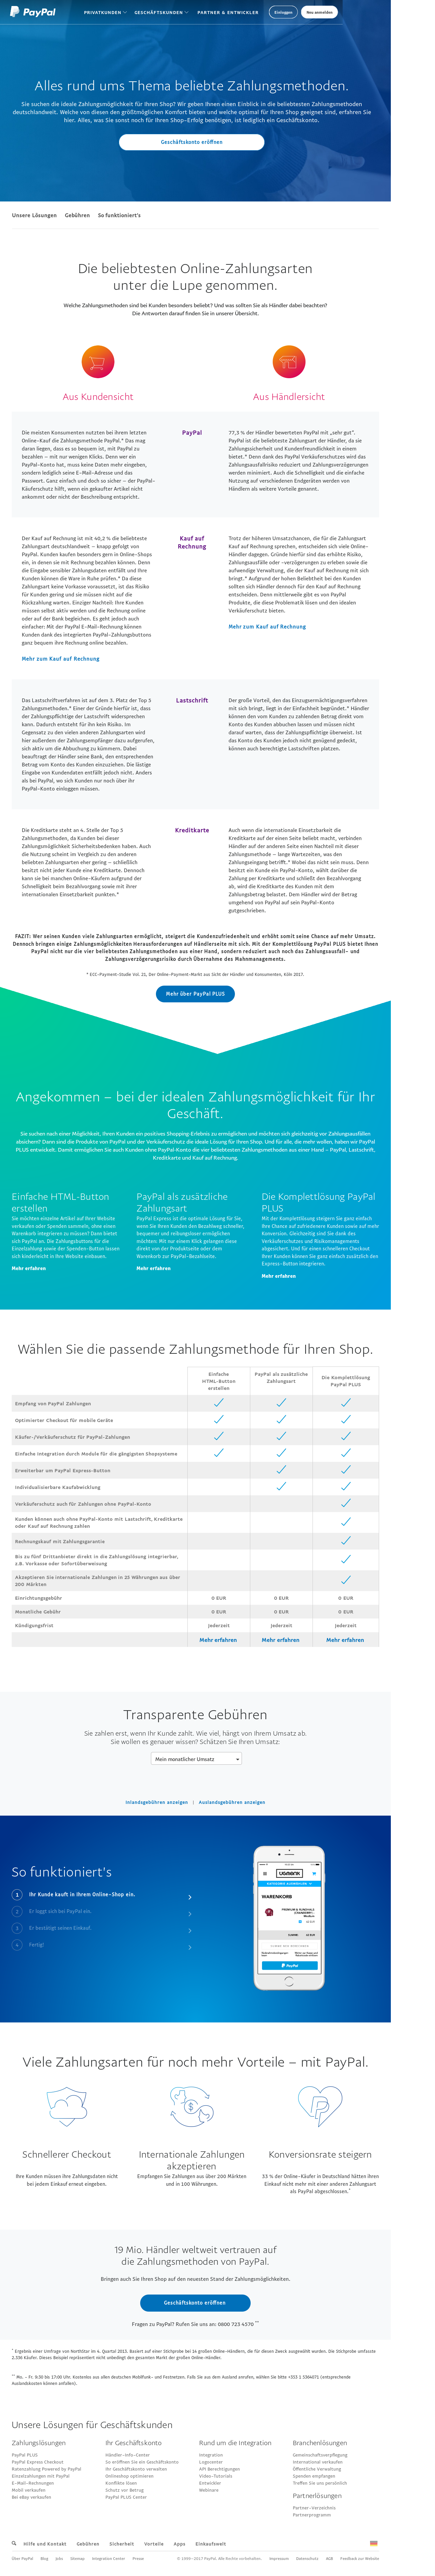 paypal anrufen